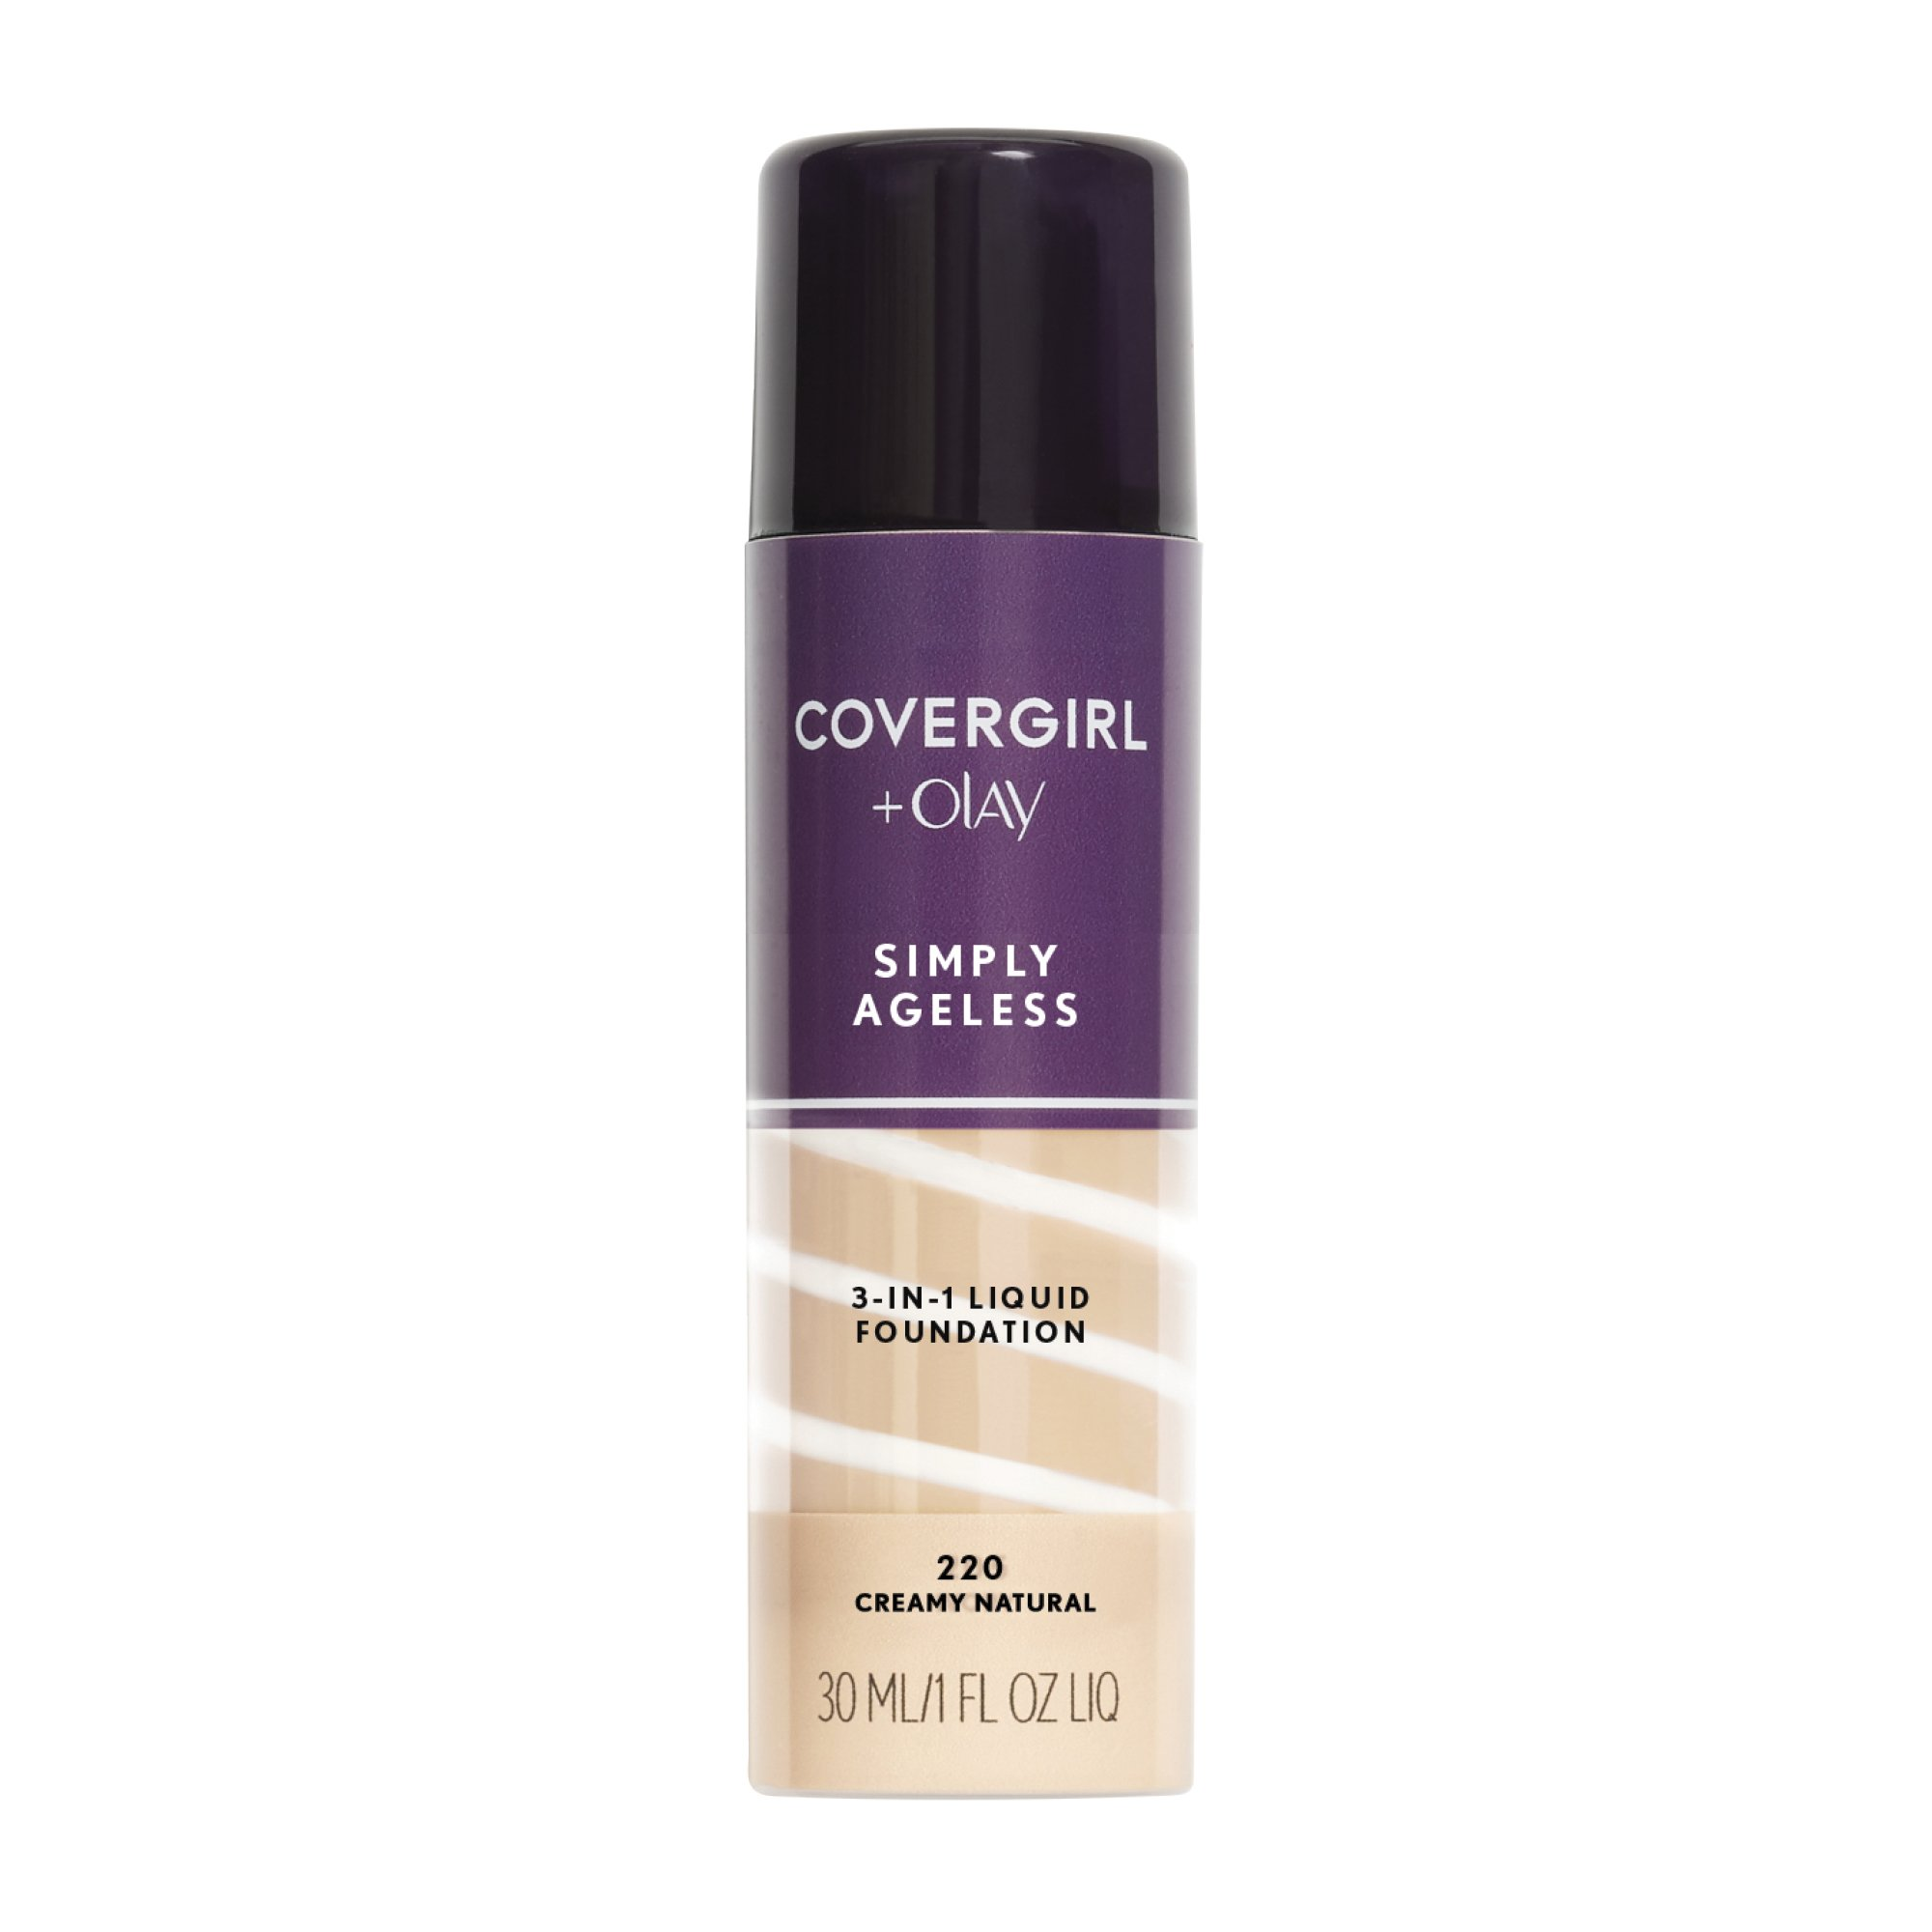 COVERGIRL + Olay Simply Ageless 3-in-1 Liquid Foundation, the #1 Anti-Aging Foundation Now In A Liquid, Creamy Natural Color, 1 Ounce (packaging may vary)